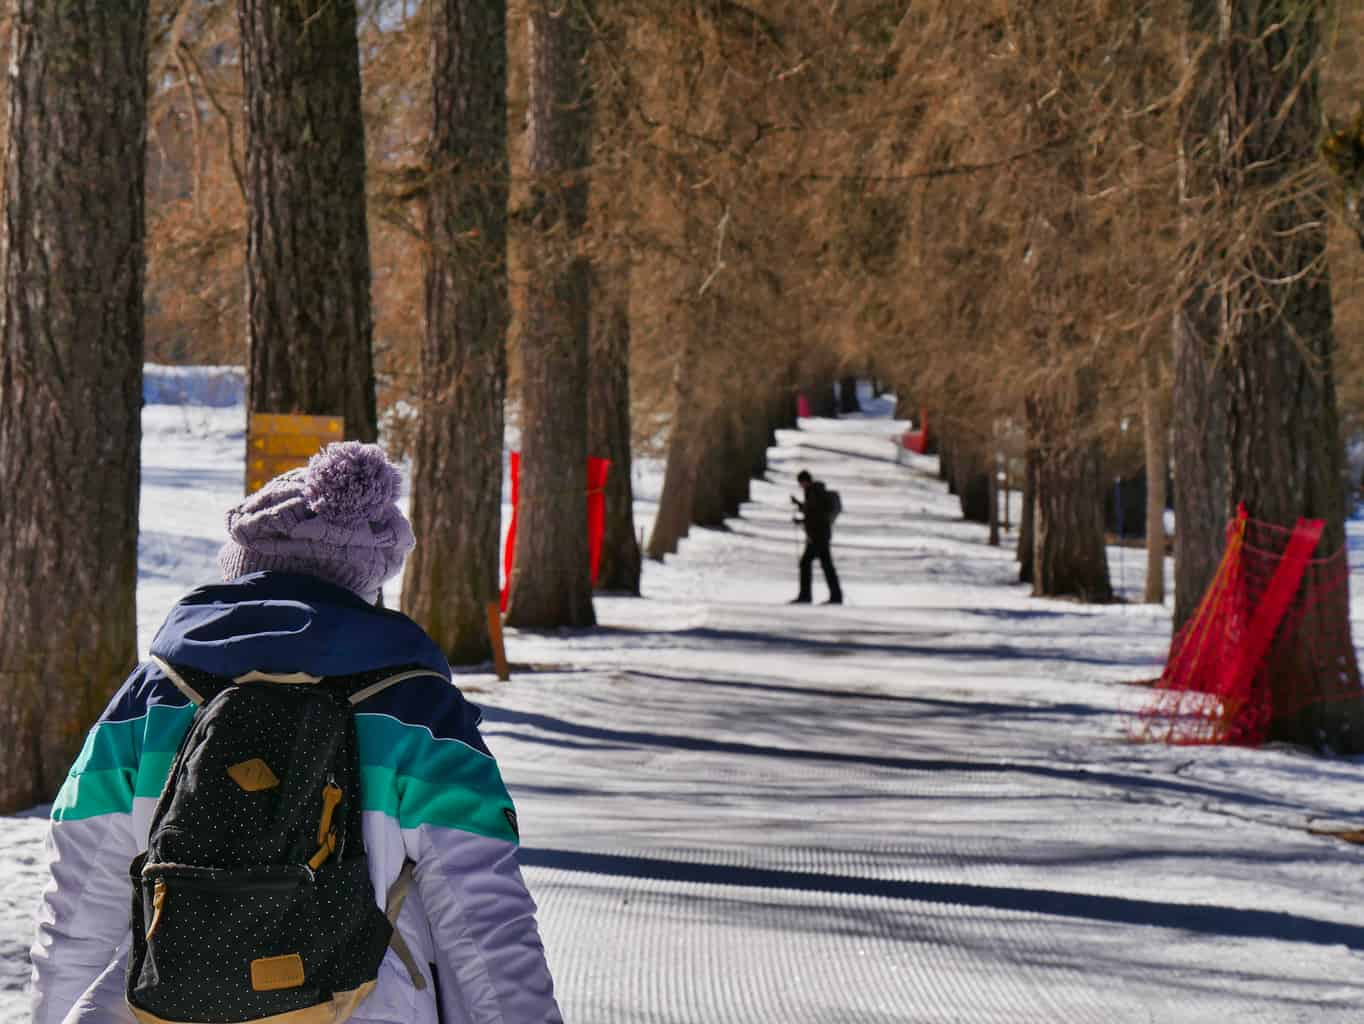 Kalyn walking through Nordic Ski Site in Peisey-Nancroix with trees on either side and man Nordic Skiing in the background